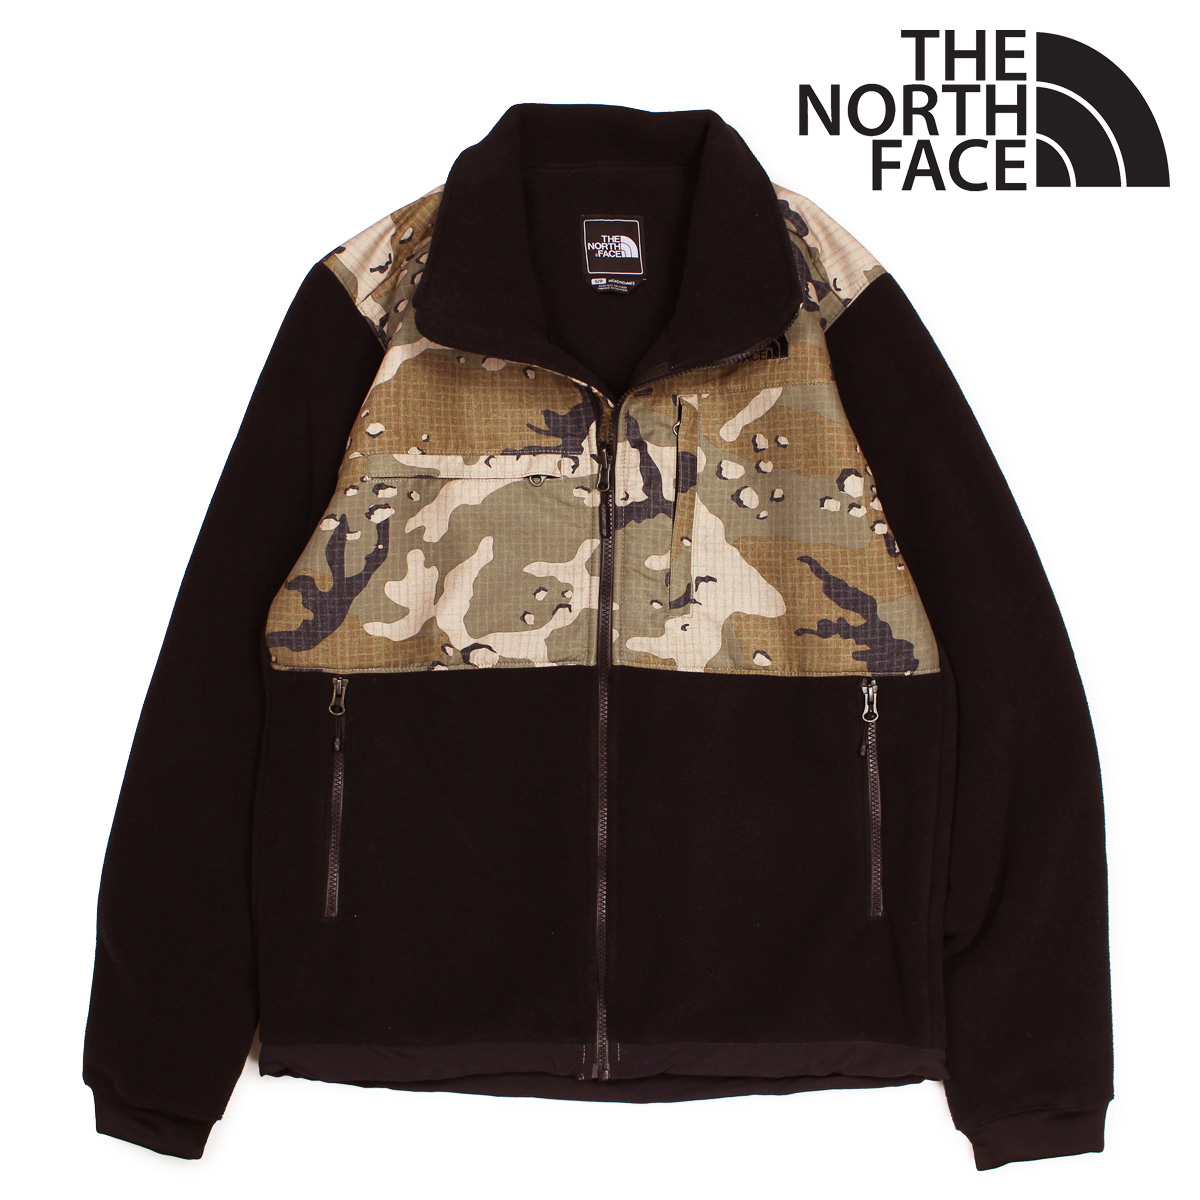 257cf6b15 THE NORTH FACE MENS DENALI 2 FLEECE JACKET North Face jacket fleece jacket  men duck TNF02K4 [3/22 Shinnyu load] [183]